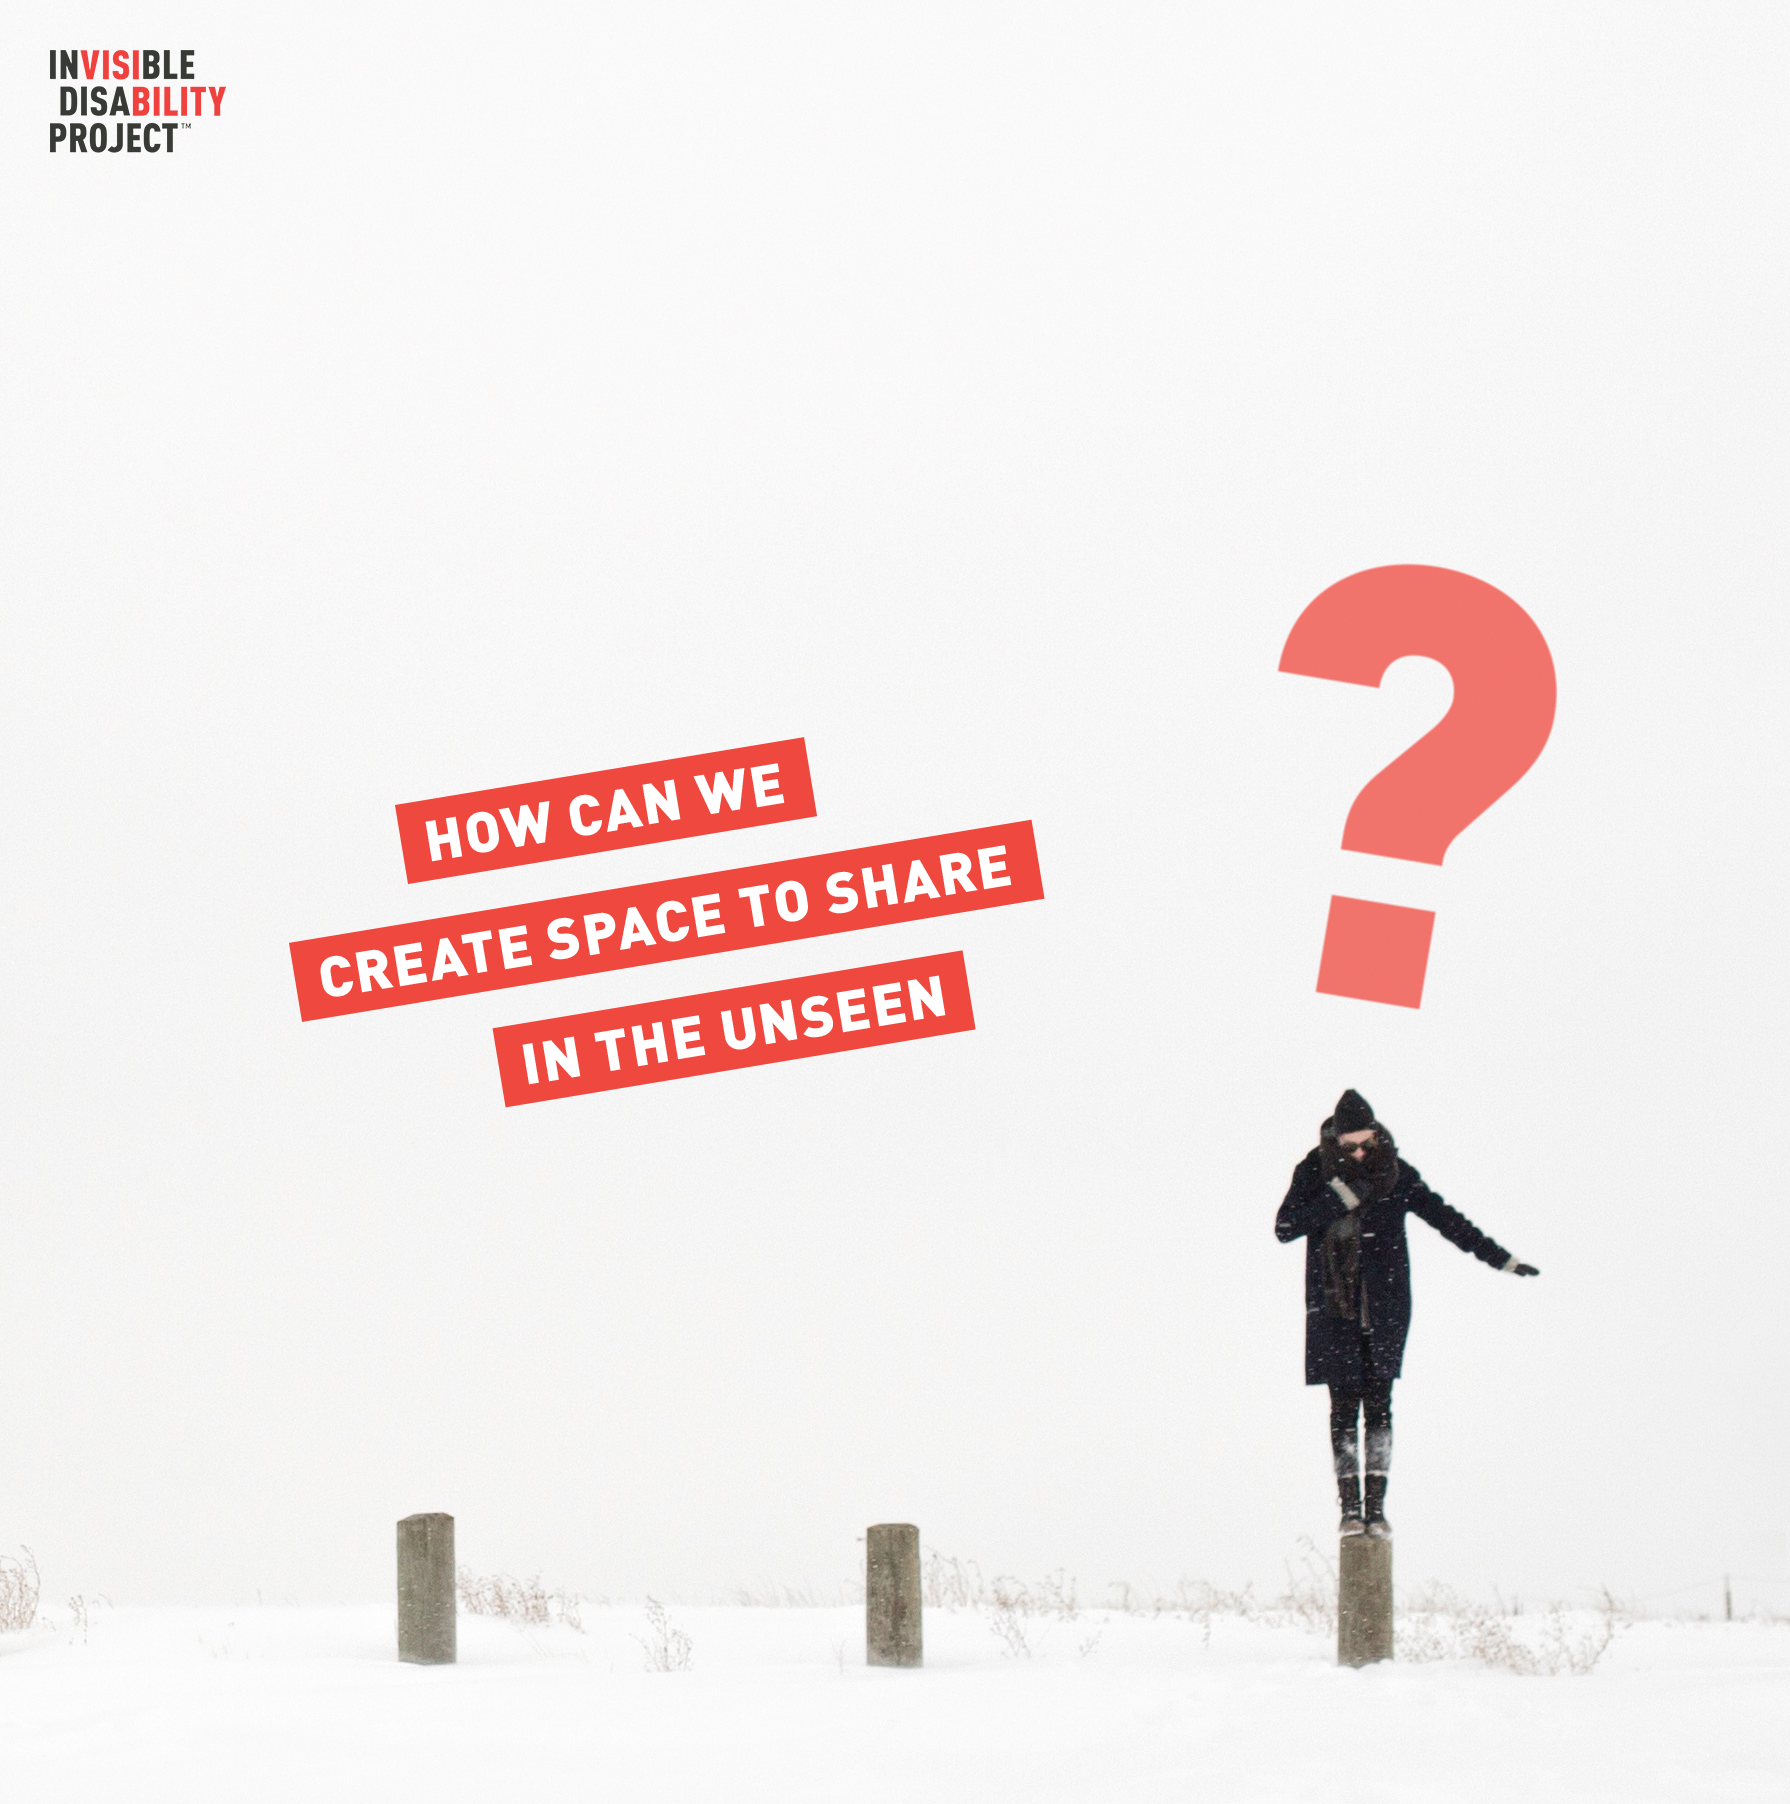 How do we create space to share in the unseen?